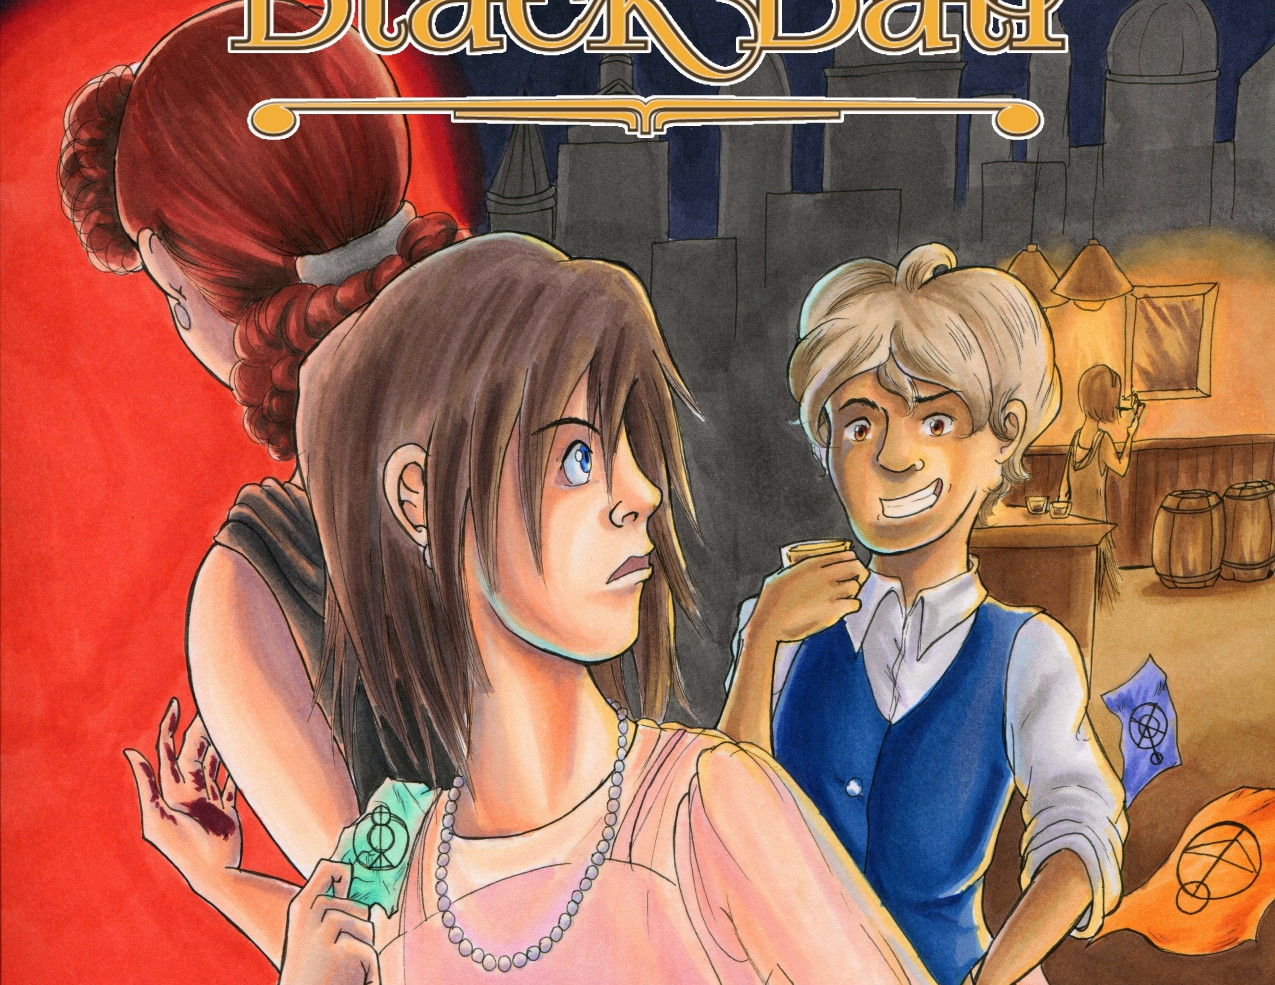 Black Ball issue 1 digital version_page-